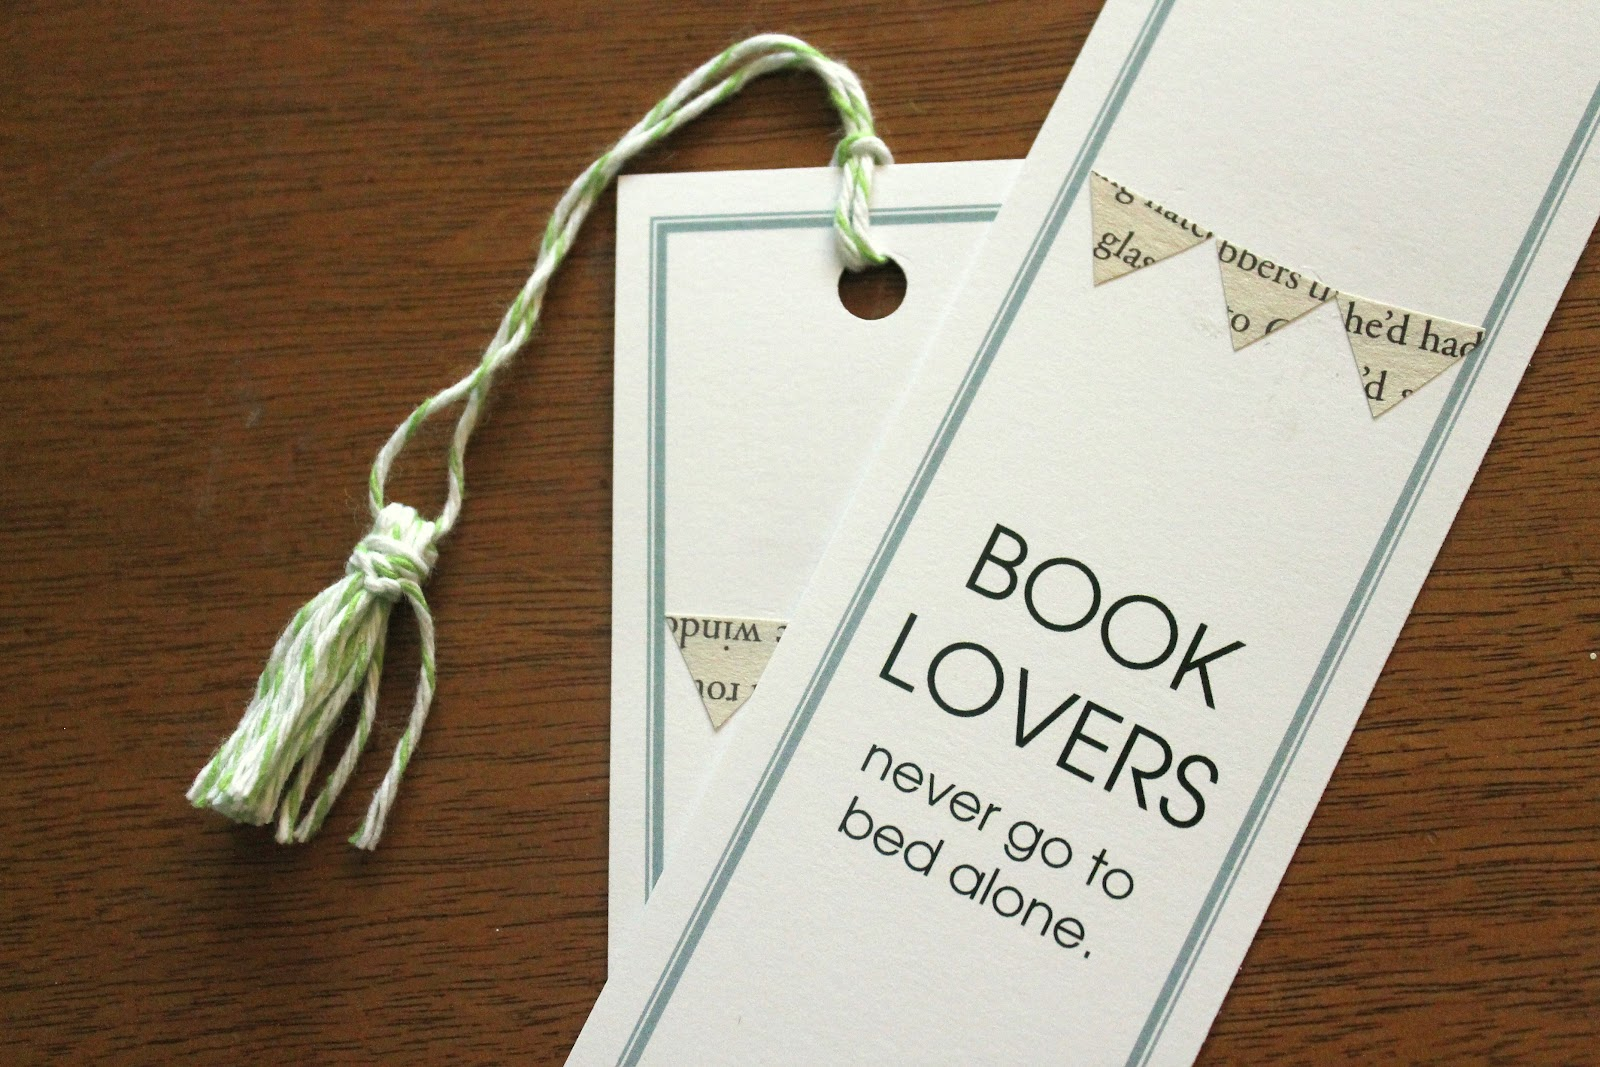 she always loved) larking.: a literary bridal shower {DIY/how-to post}